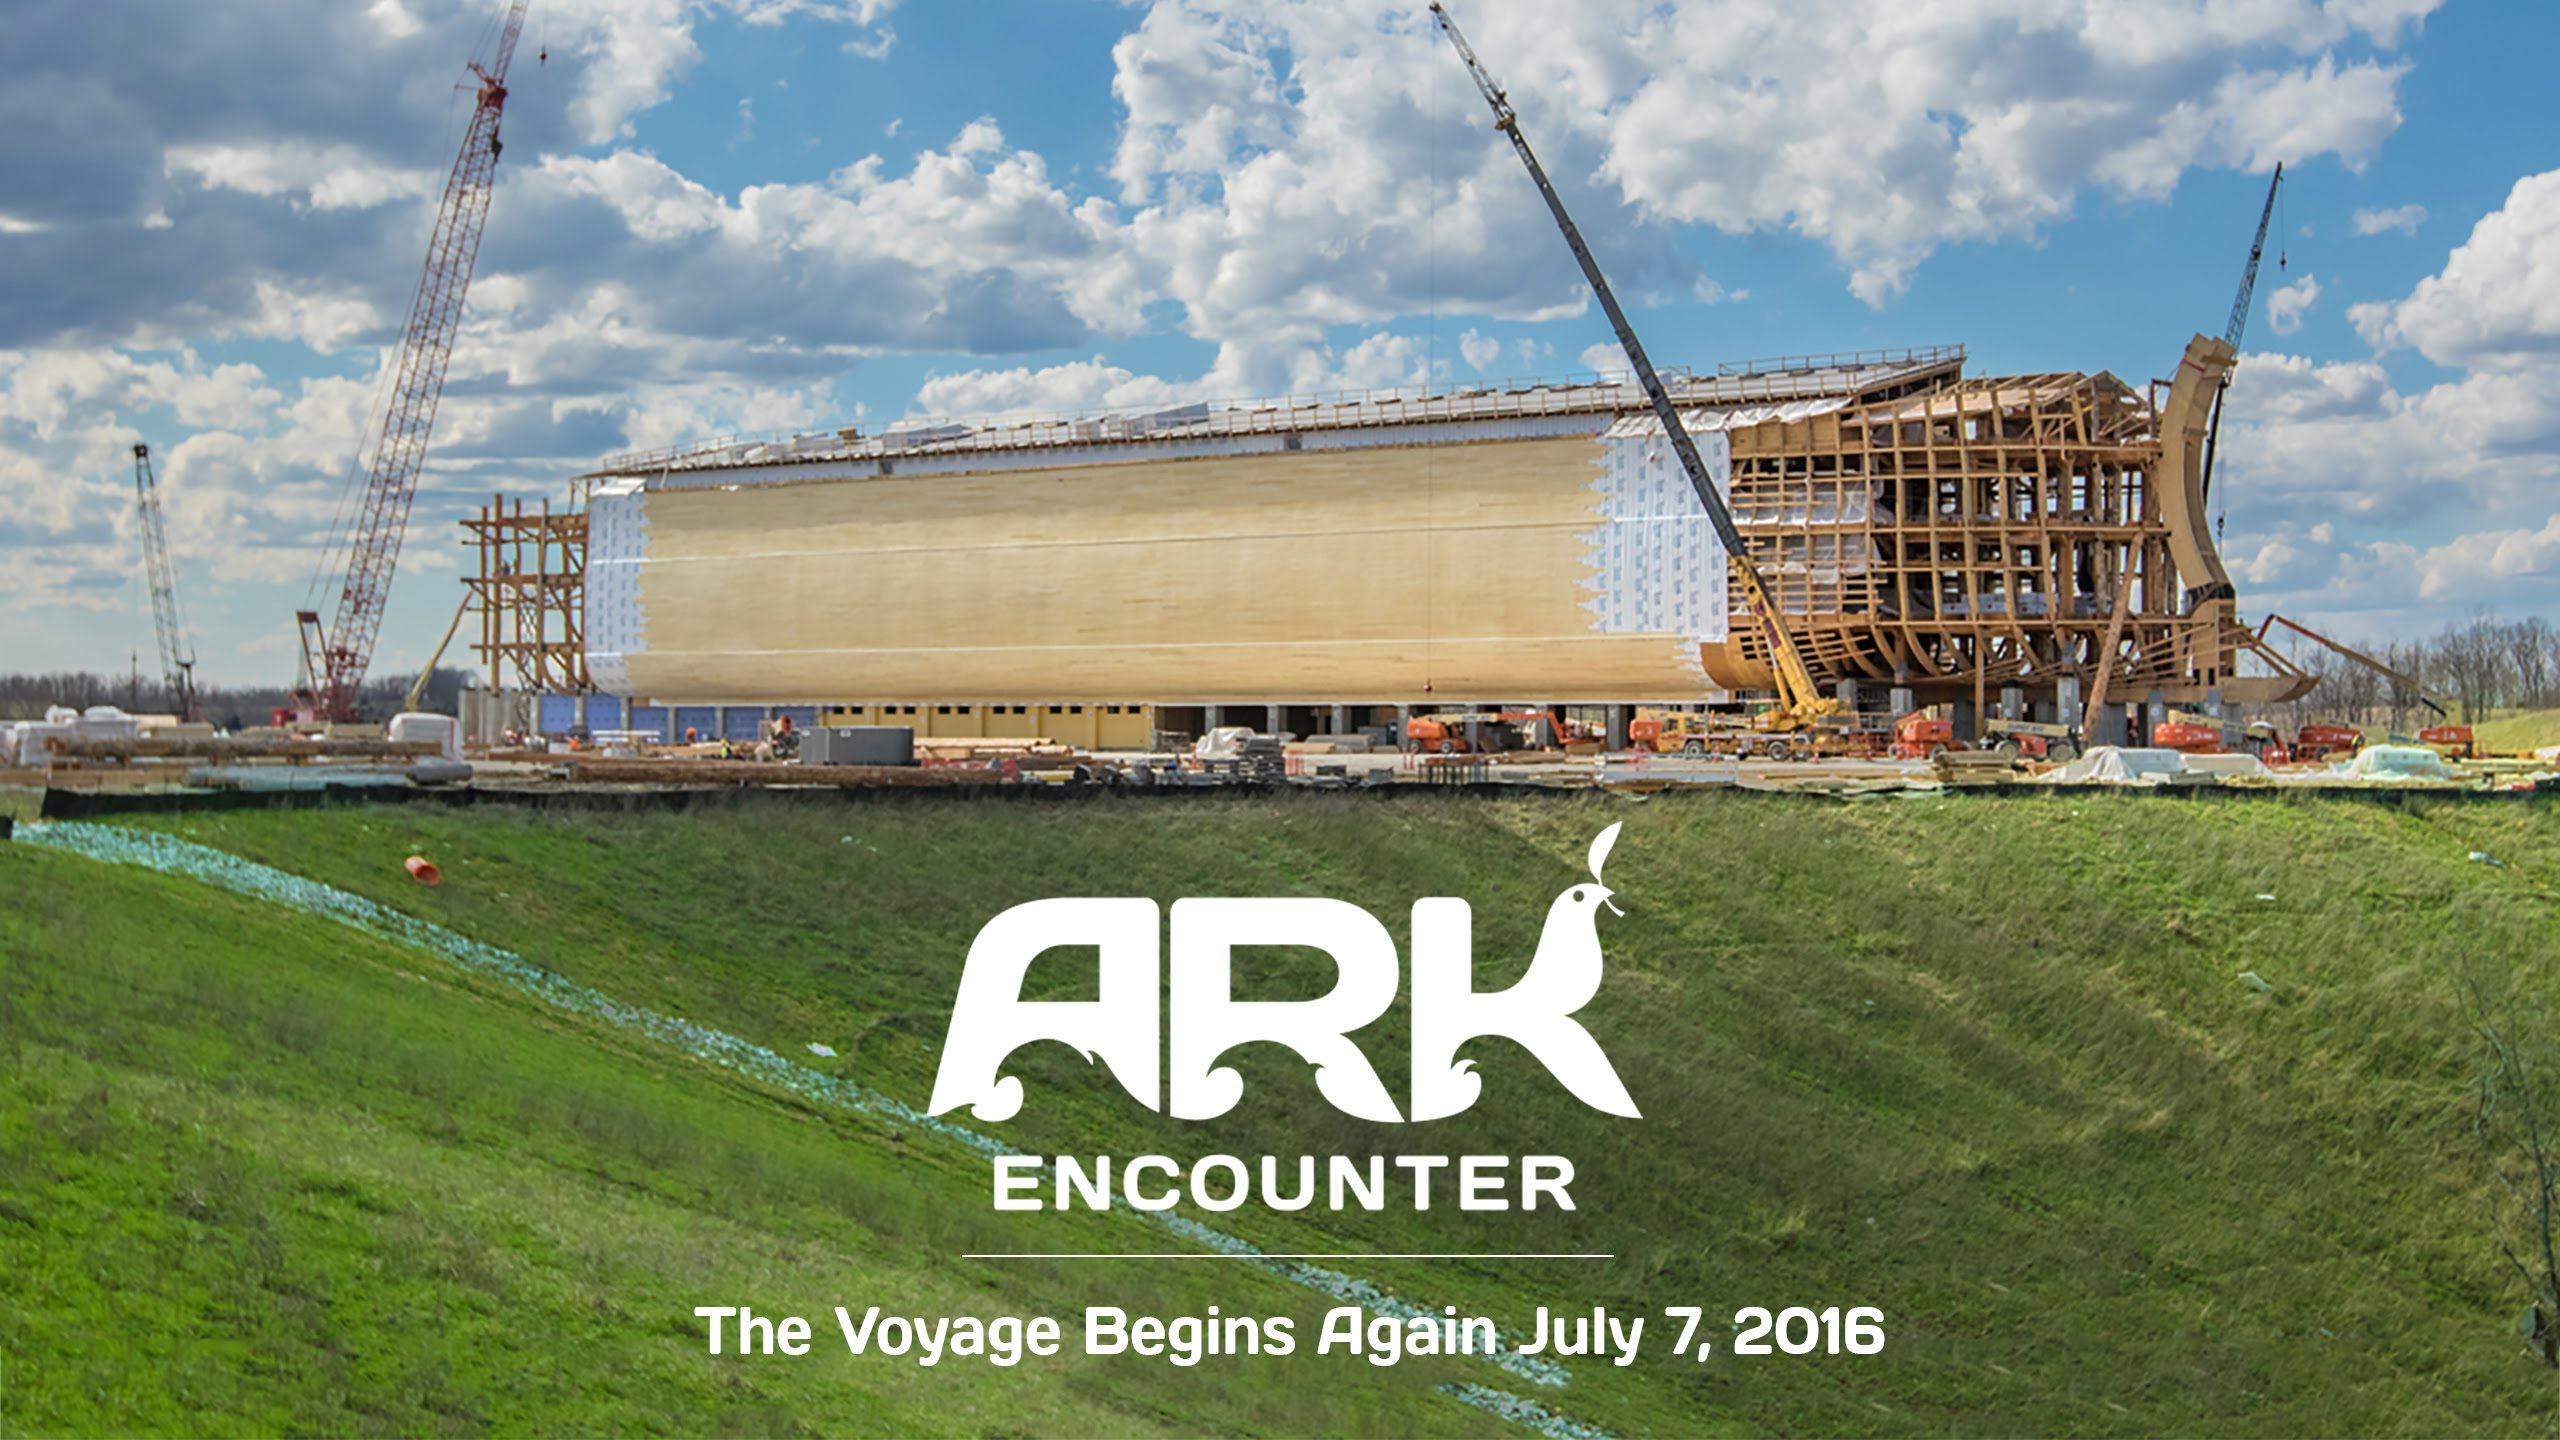 Why More People Need To Enter Through The Door Of The Ark